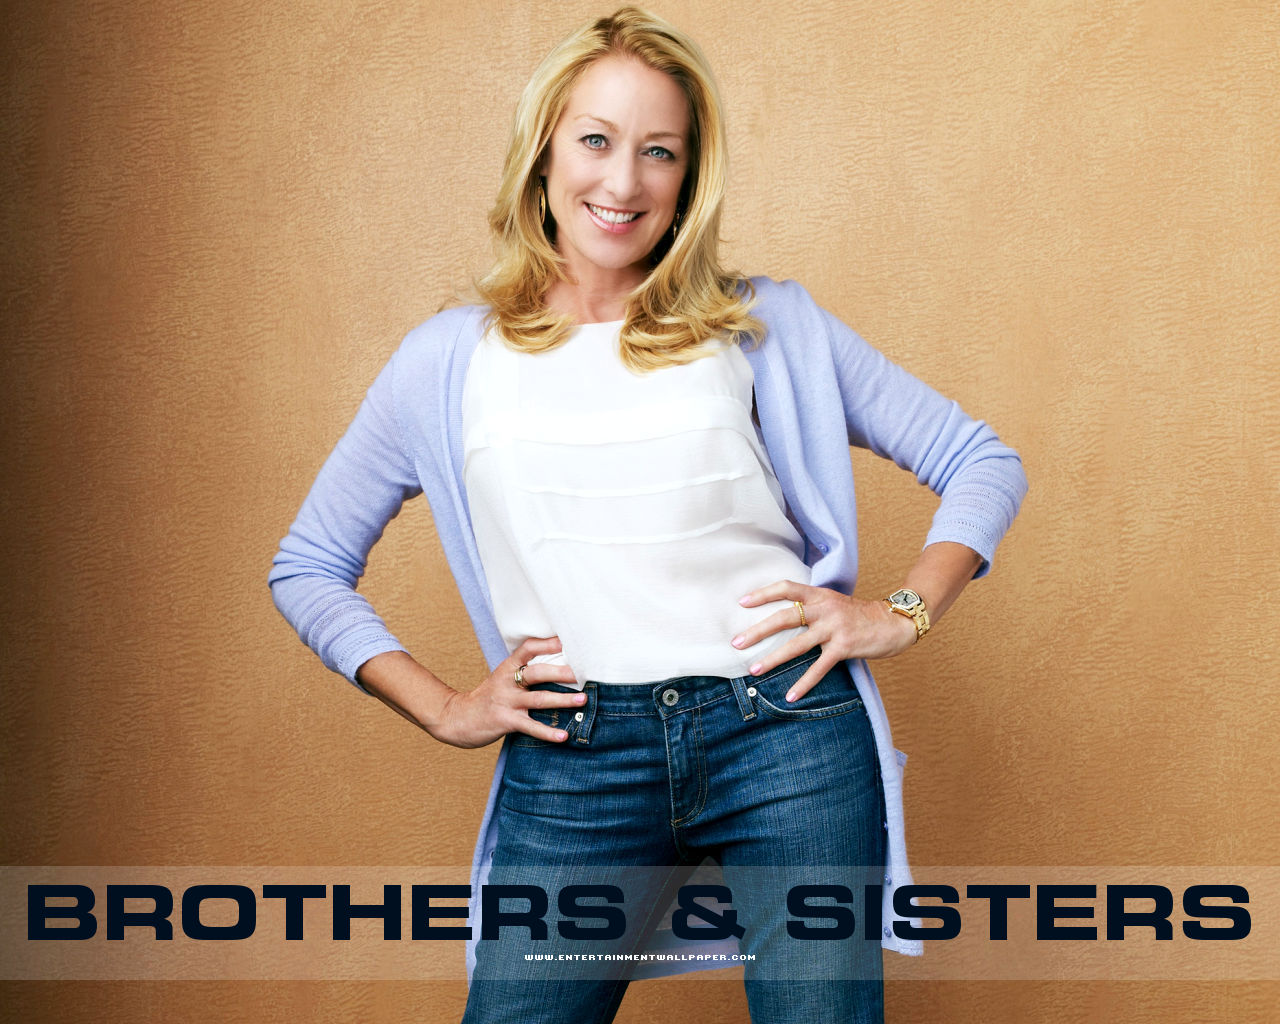 patricia wettig brothers and sisters wallpaper 1280x1024 1jpg 1280x1024